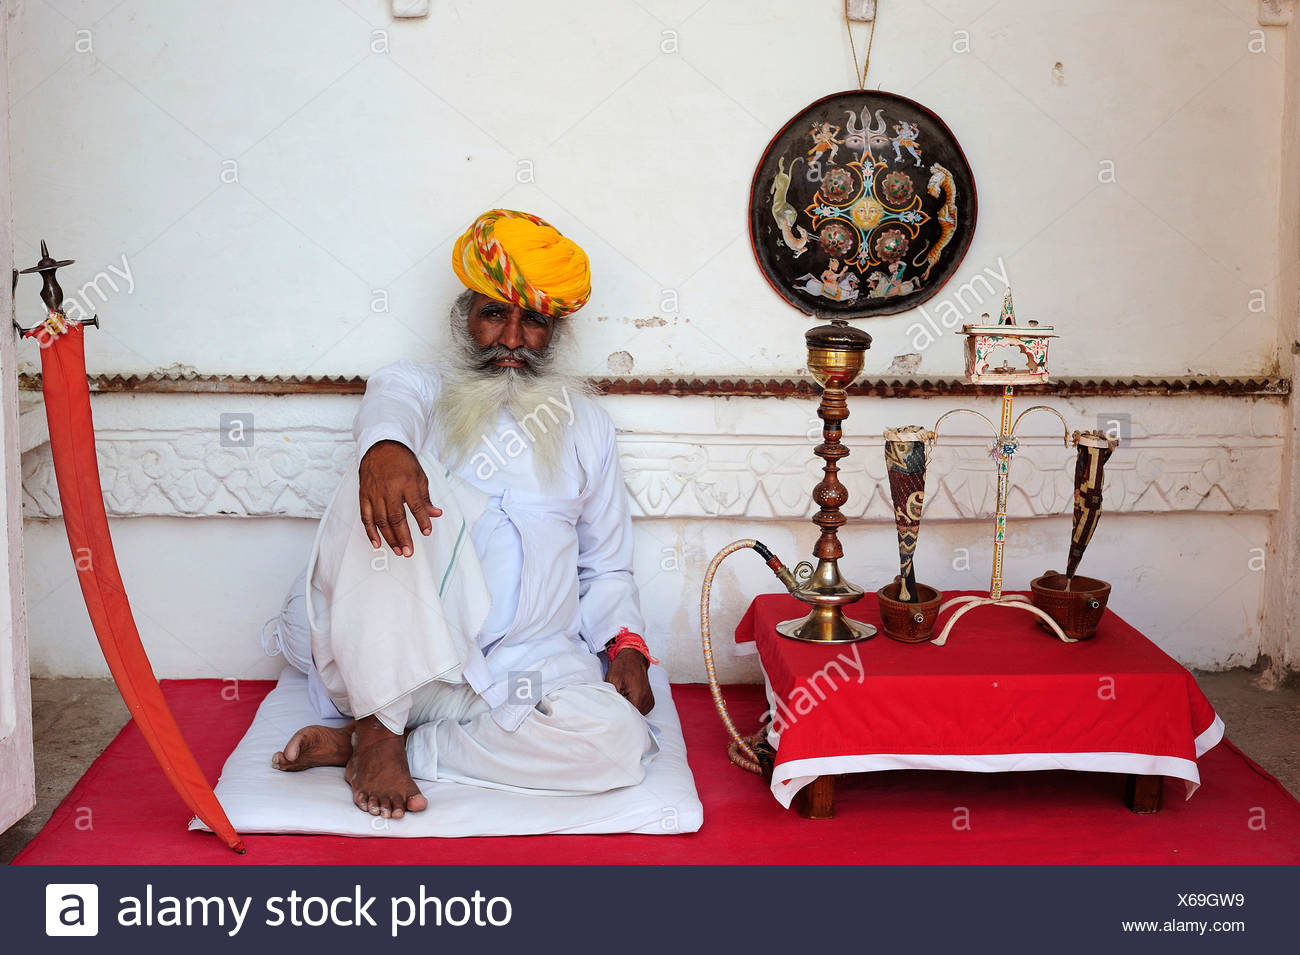 96488fec37 Elderly Indian man in traditional dress with turban and hookah, Meherangarh  Fort, Jodhpur,